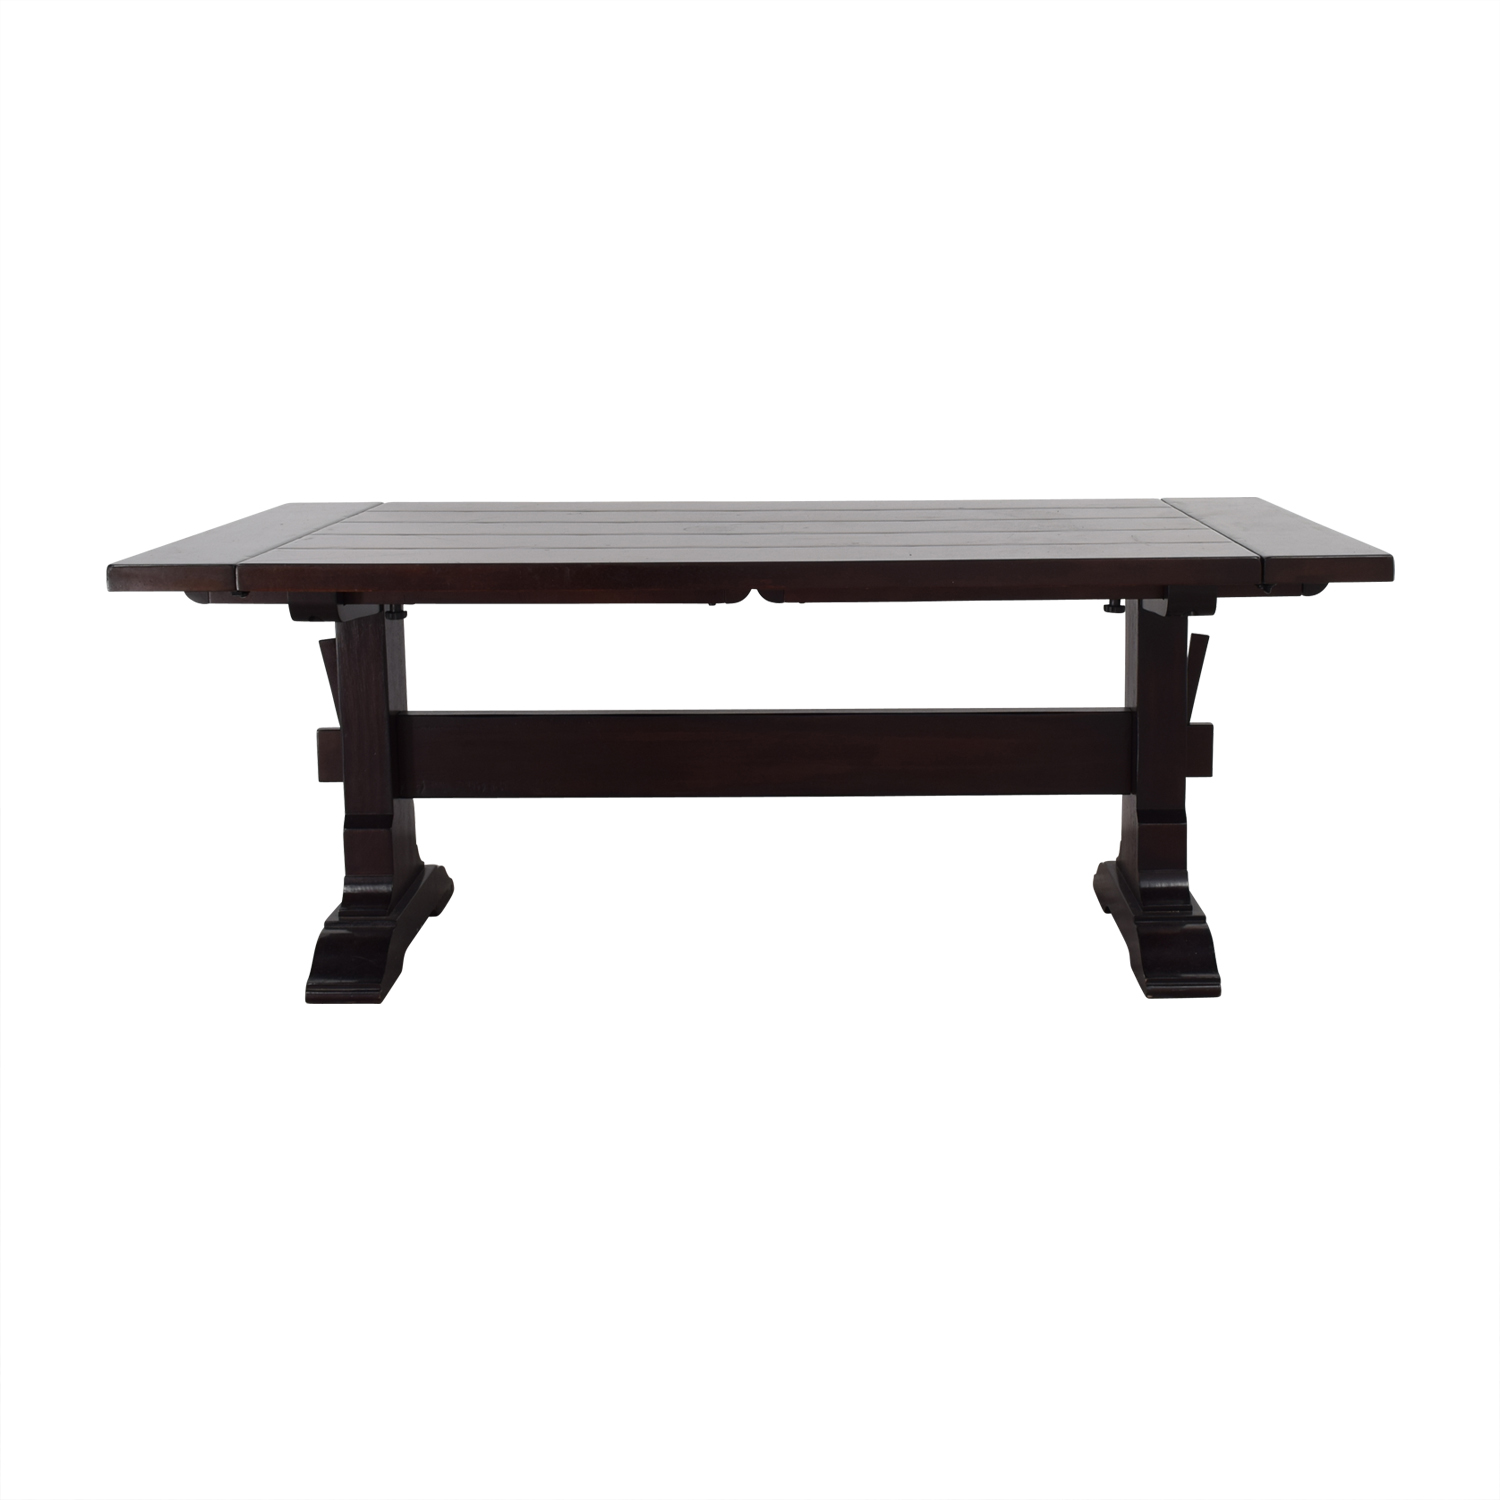 Pottery Barn Pottery Barn Extendable Wood Dining Table price